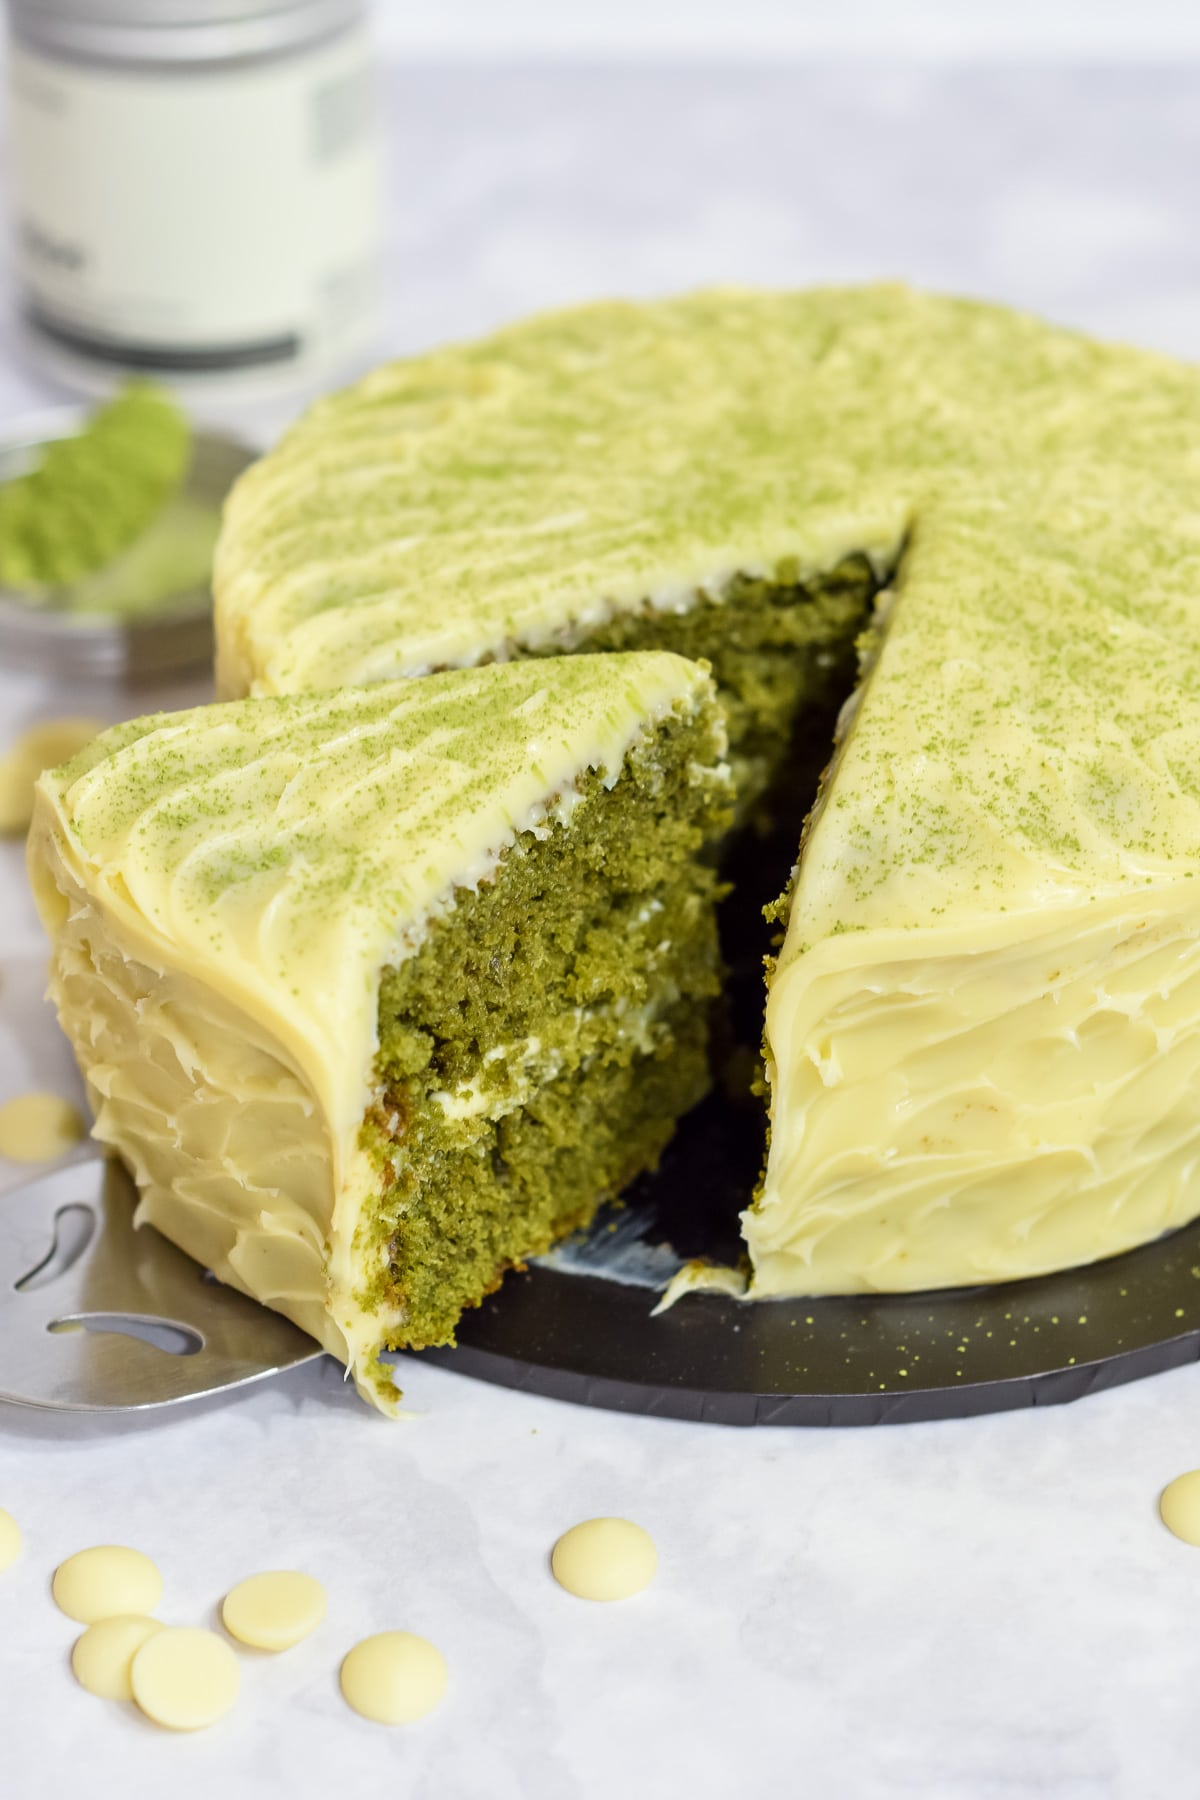 easy matcha green tea cake with white chocolate ganache frosting sliced